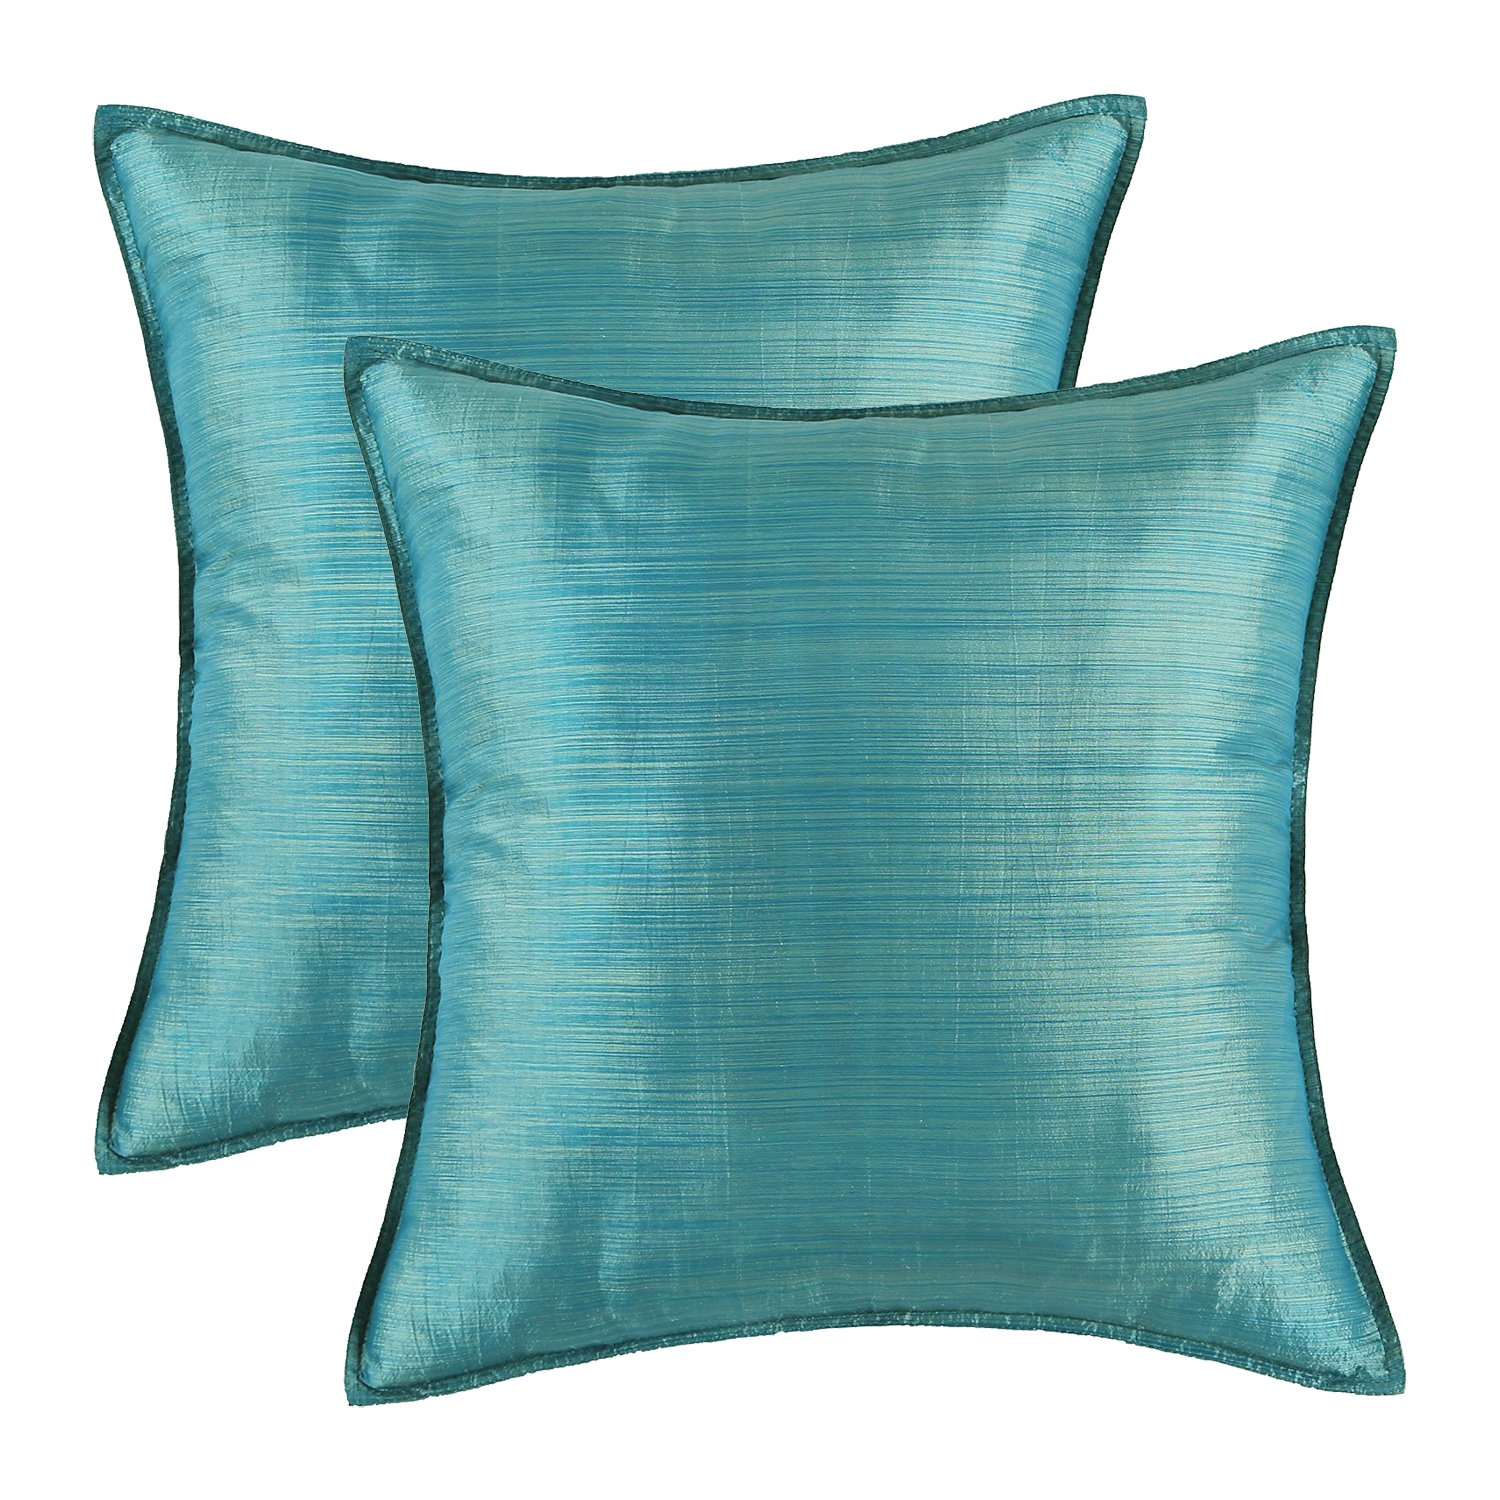 CaliTime Pack of 2 Silky Throw Pillow Covers Cases for Couch Sofa Bed Modern Light Weight Dyed Striped 18 X 18 inches Teal